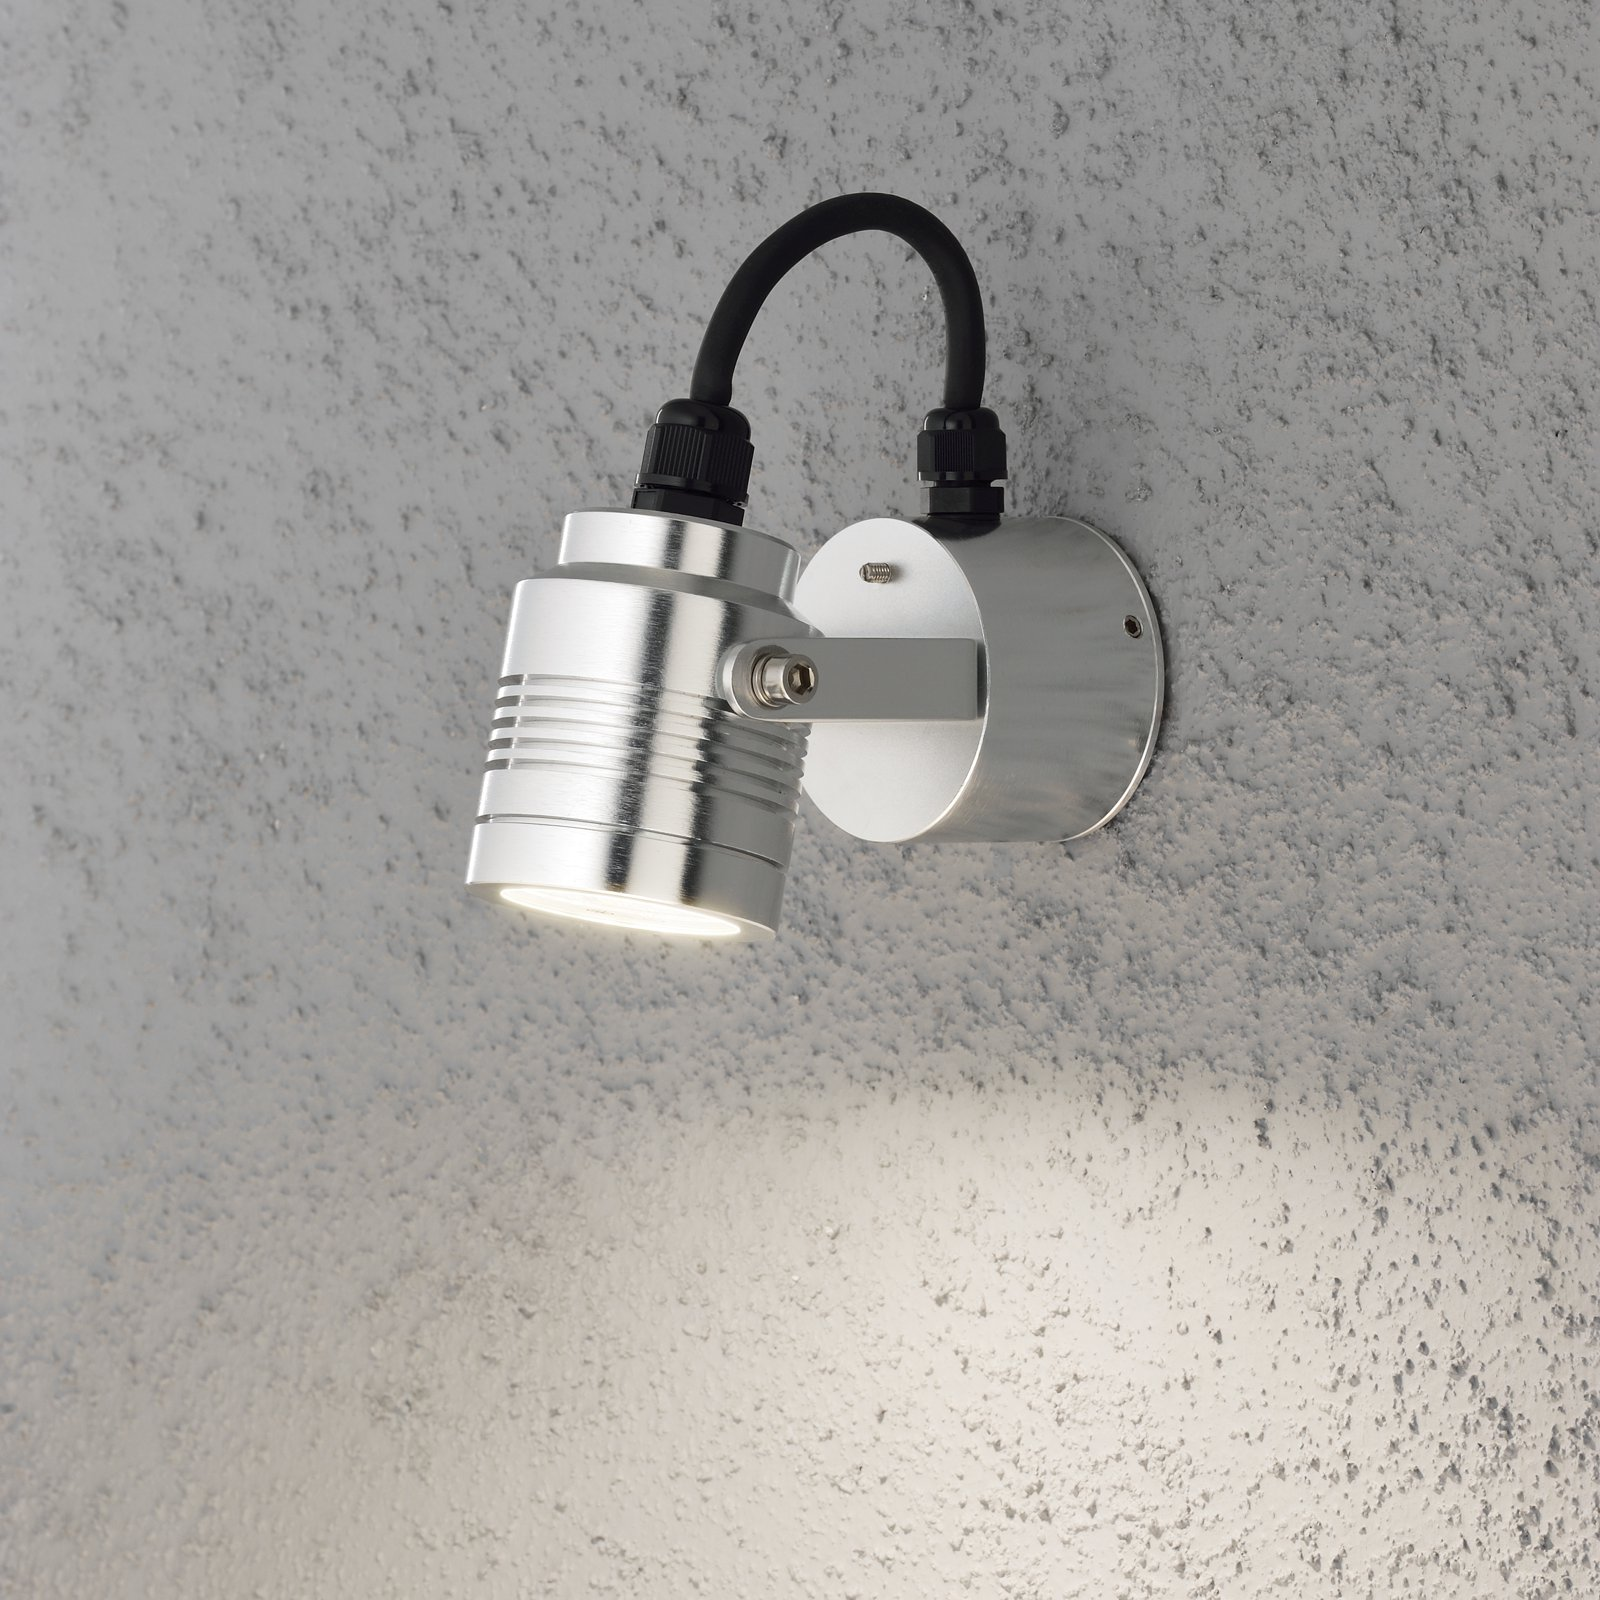 LED-seinävalaisin Monza 7903-310 80x130x80 mm alumiini